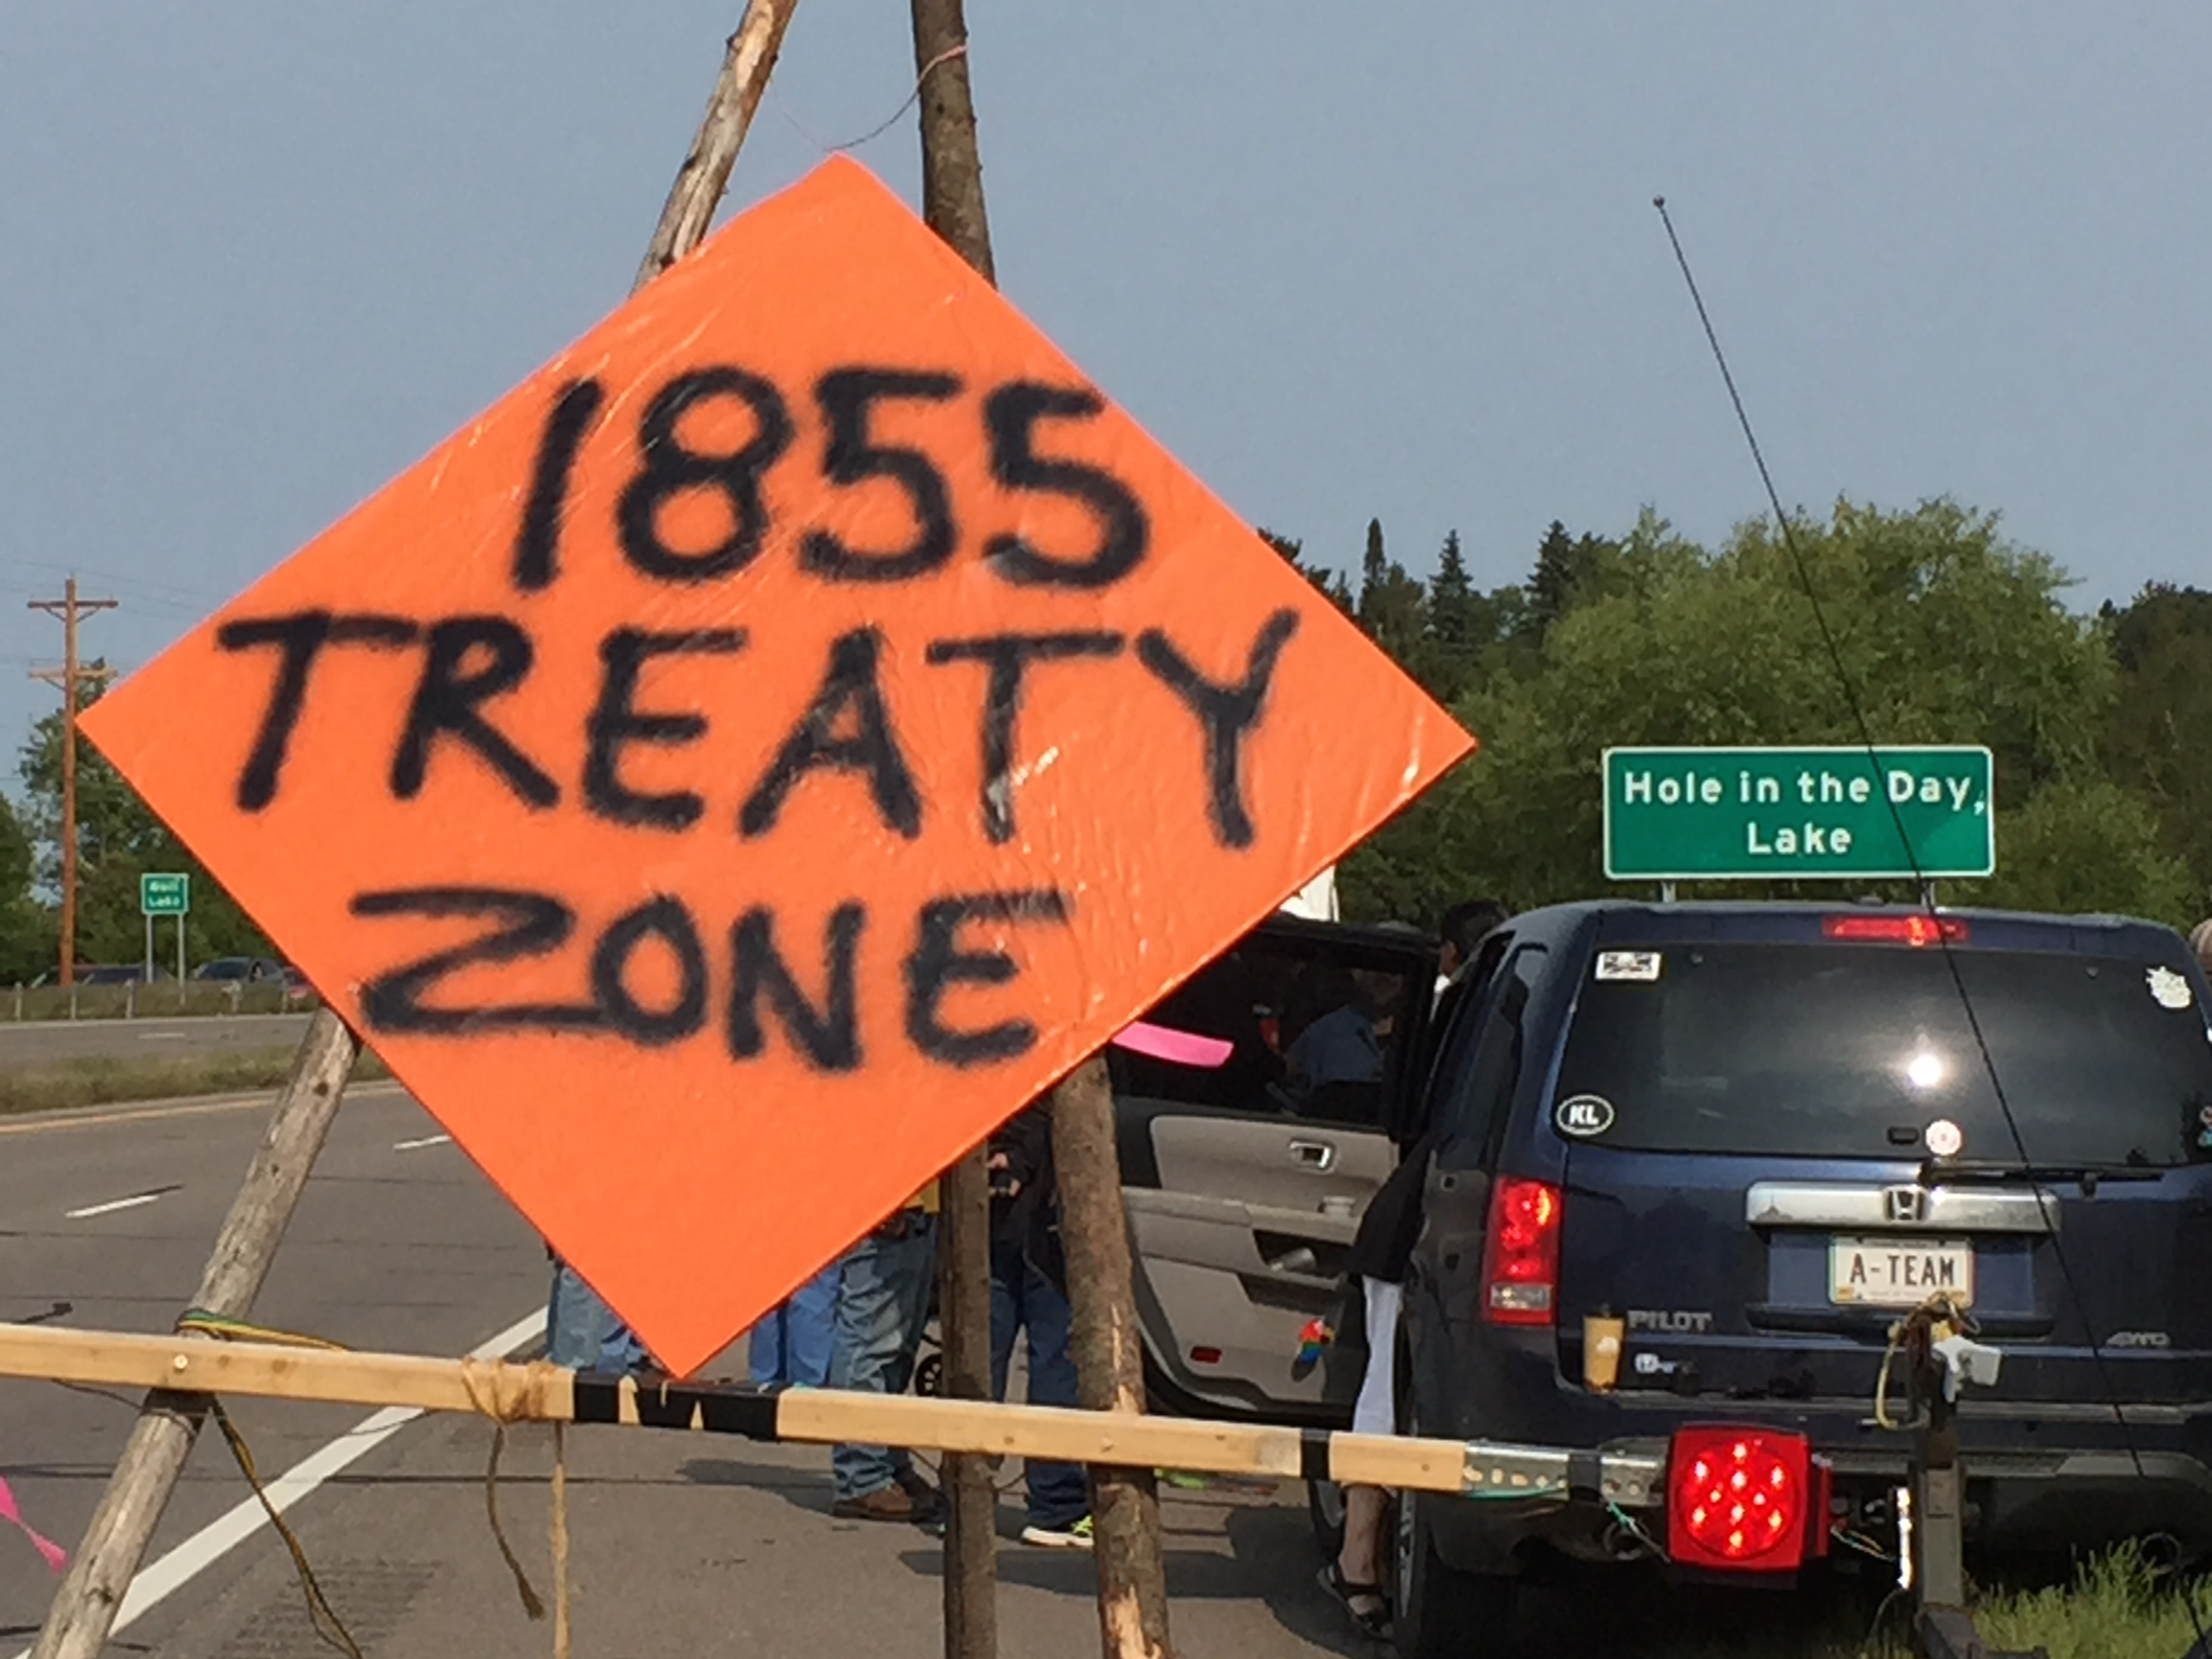 Caption: Protestors with The 1855 Treaty Authority gather outside Nishwa, MN in August 2015. , Credit: Melissa Townsend